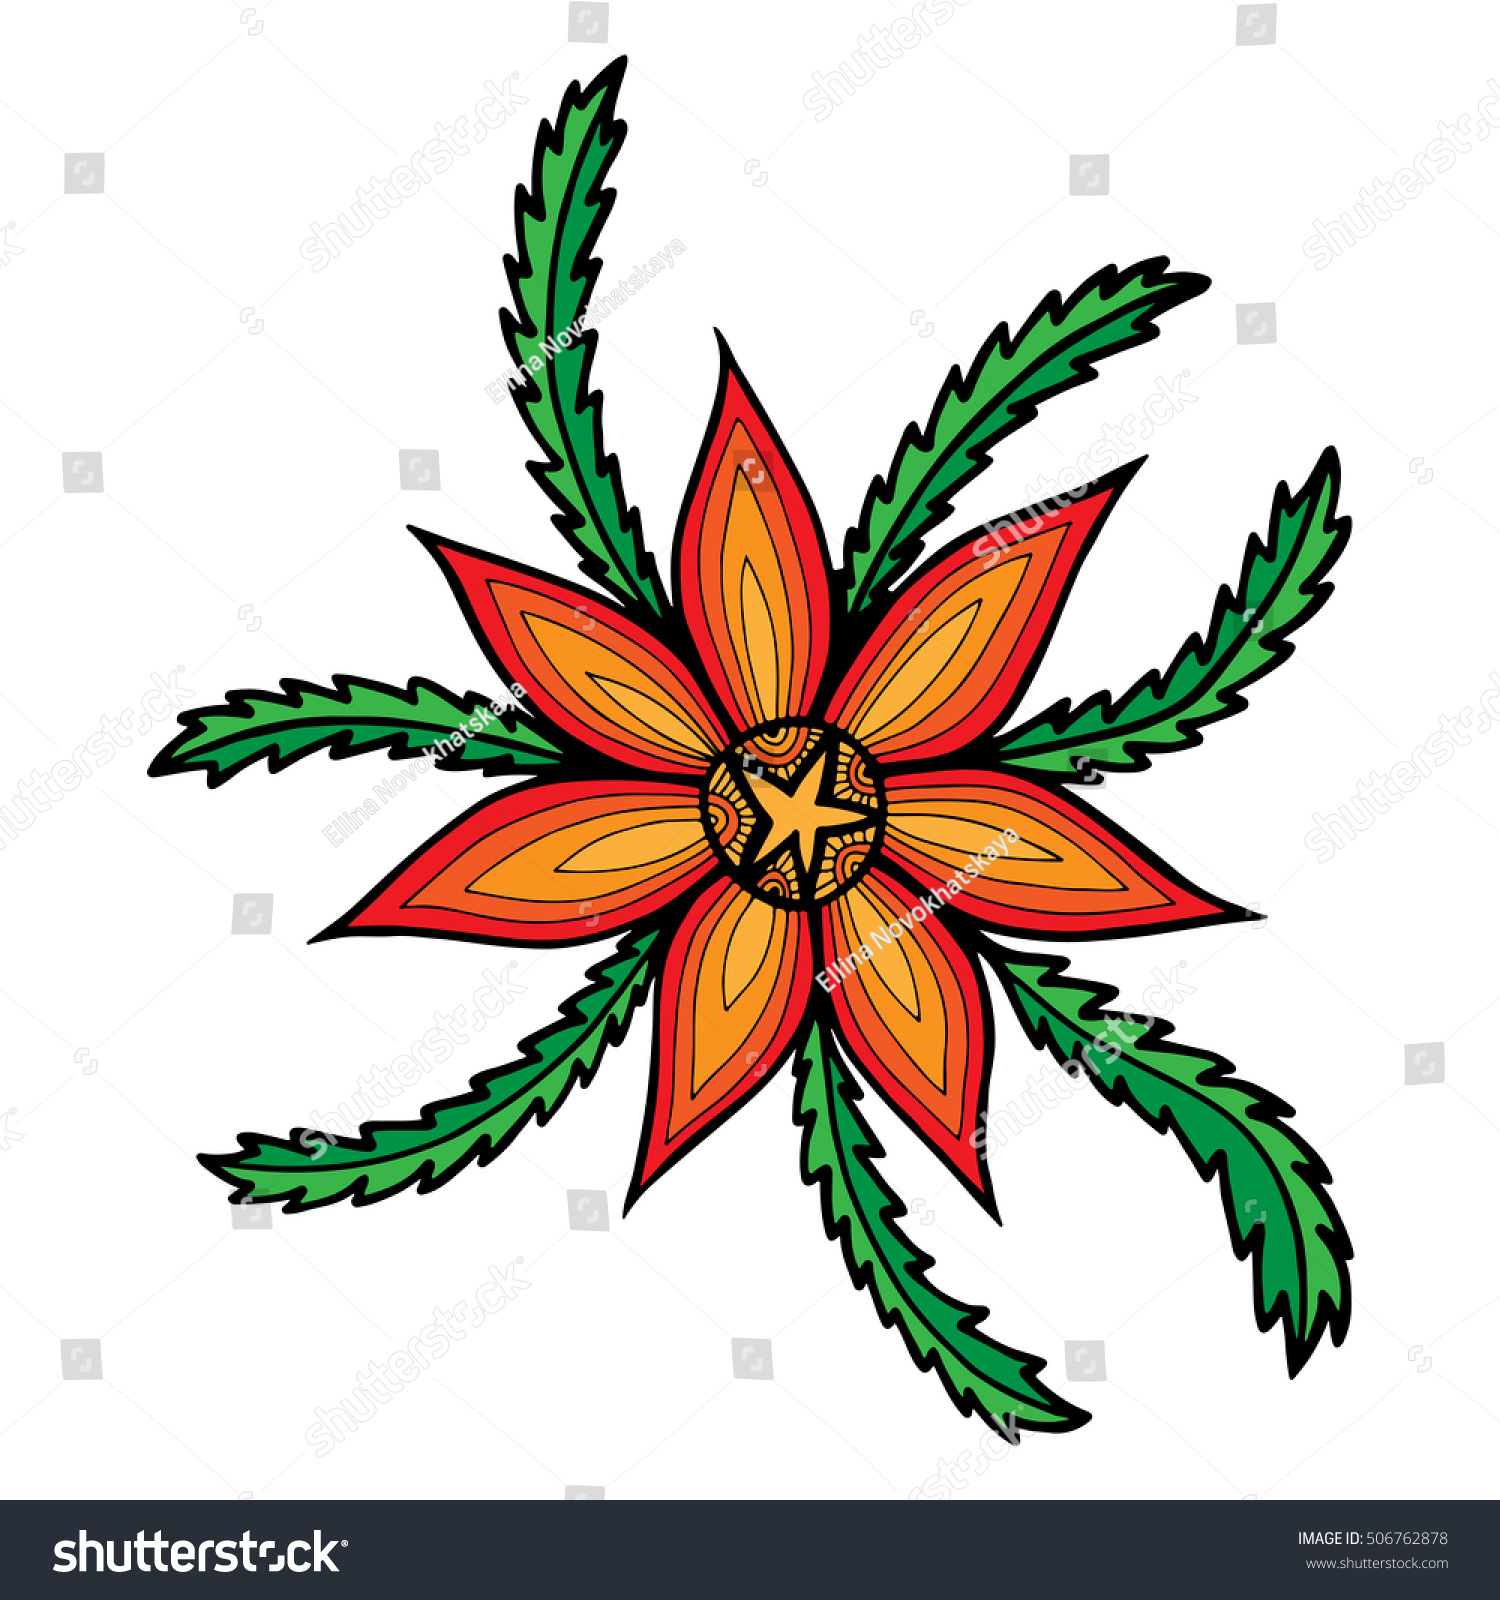 Orange Abstract Flower Leaves Adult Child Stock Vector 506762878 ...